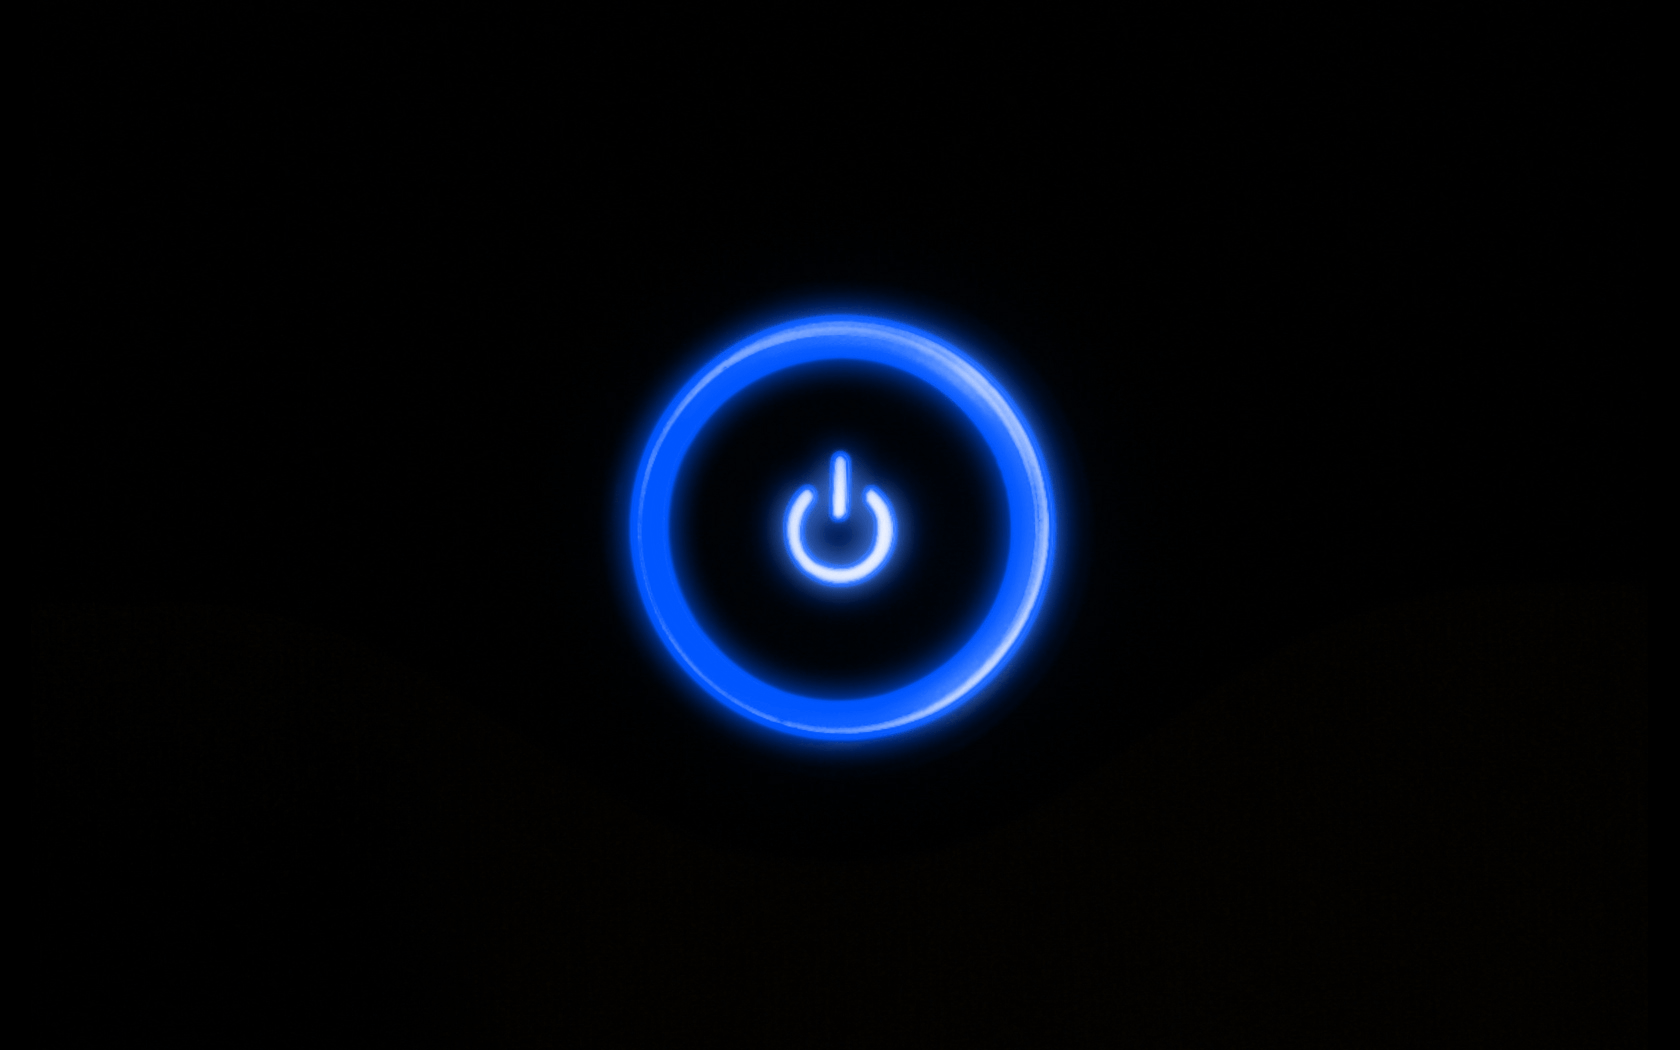 Neon Blue Wallpapers - Wallpaper Cave